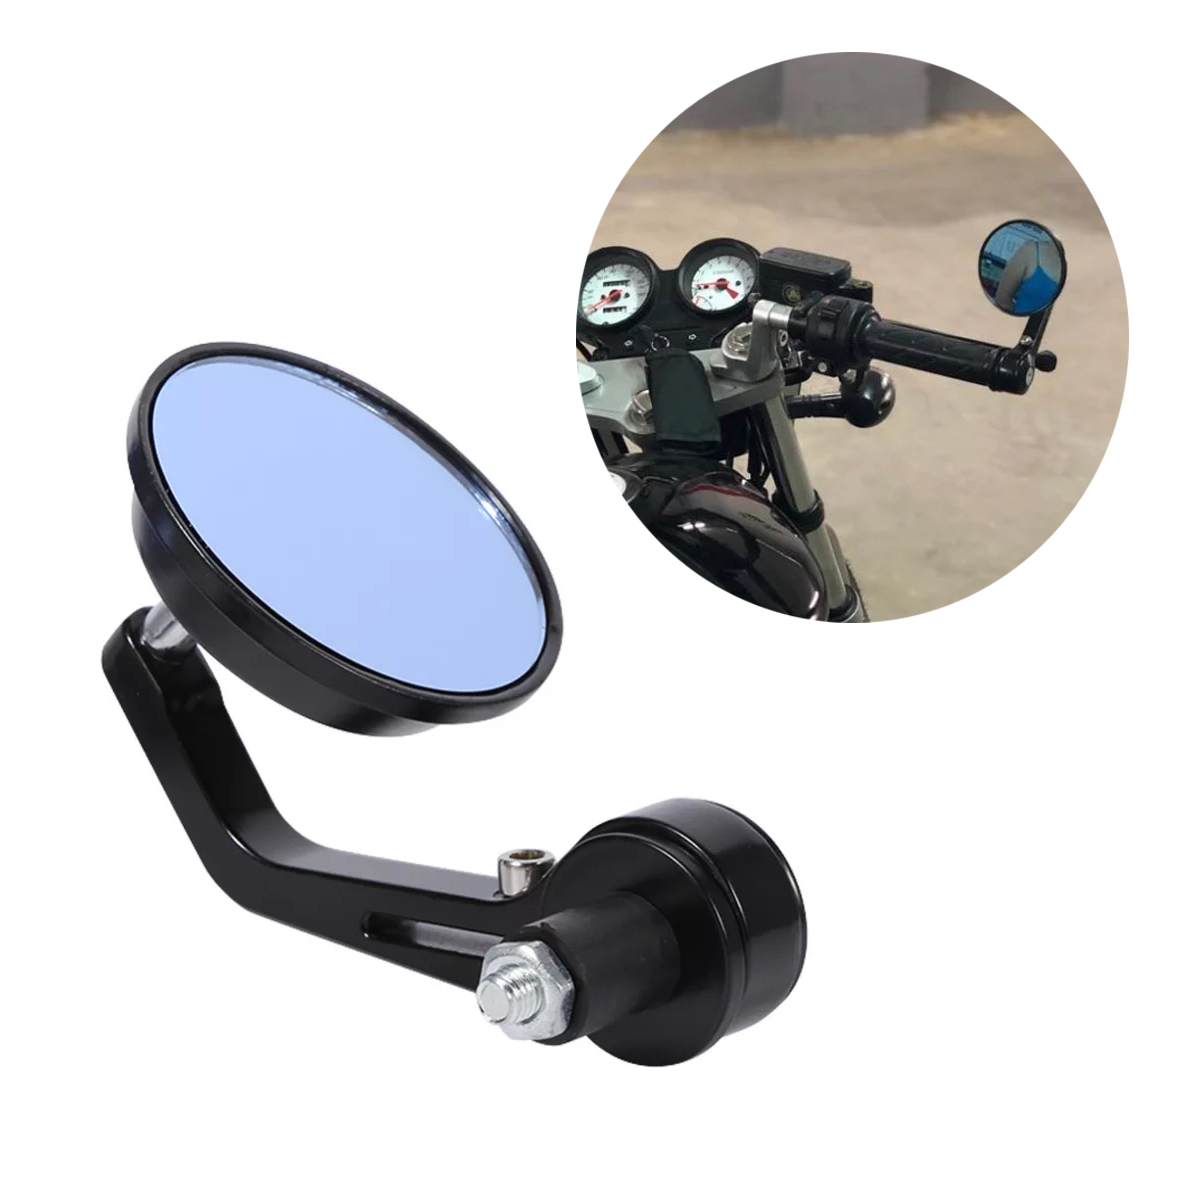 MOTORCYCLE BAR END MIRRORS - CAFE RACER STYLE